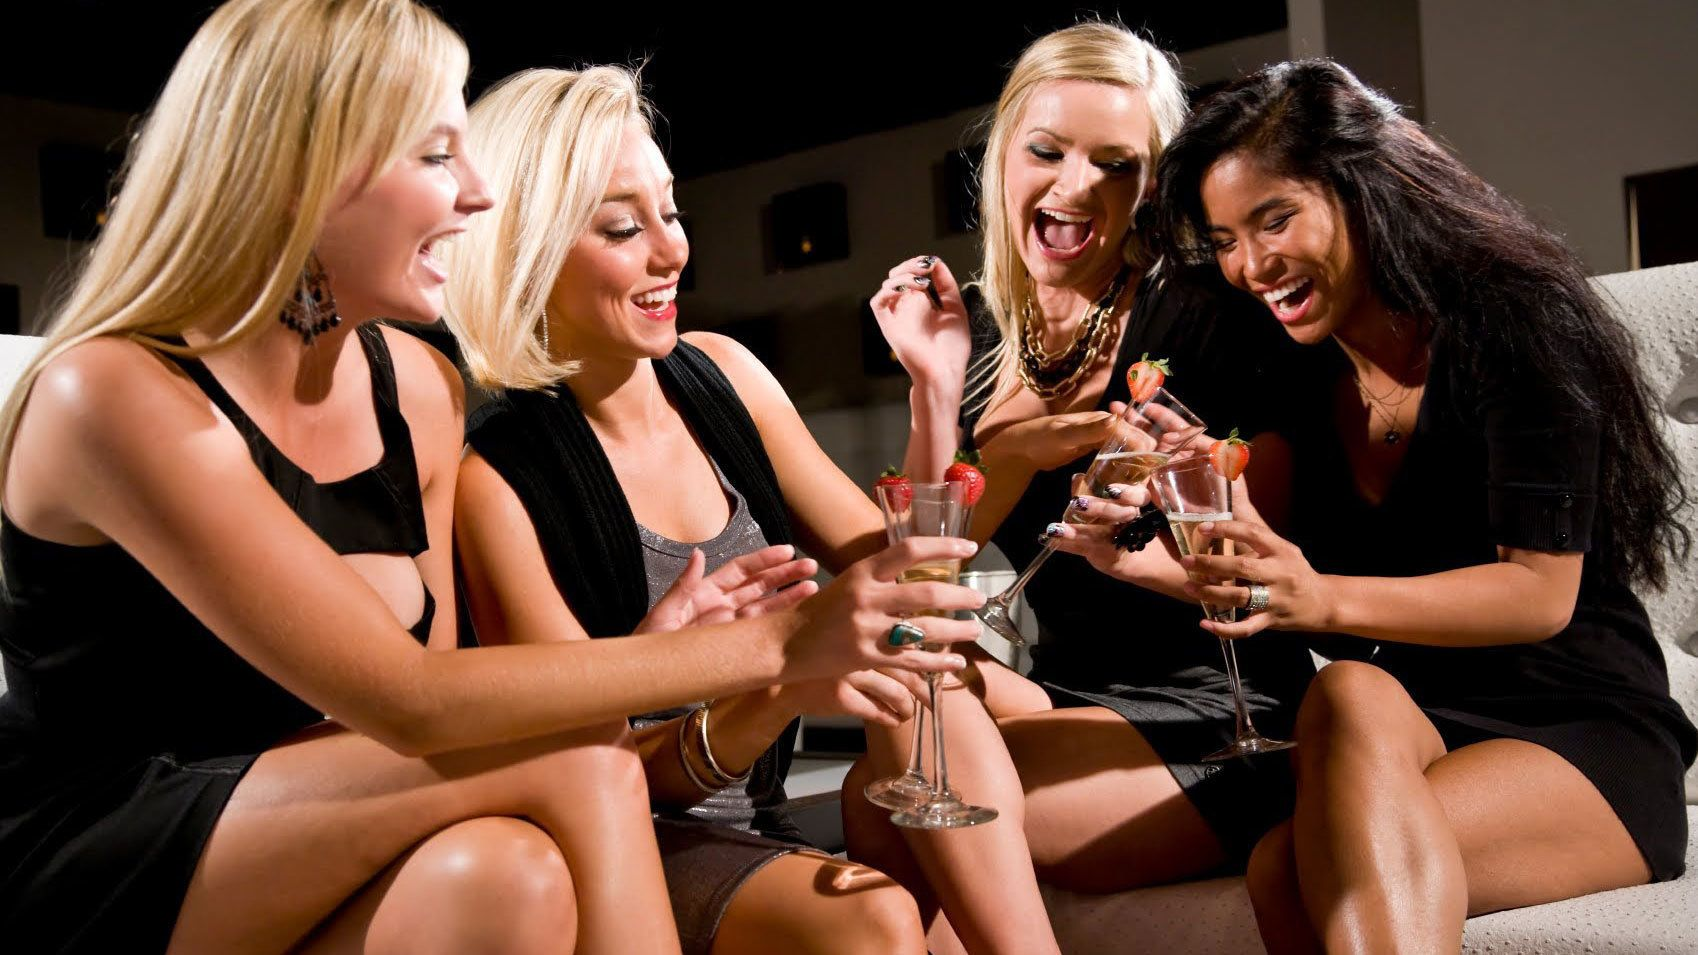 View of some ladies having drinks and laughter inside a nightclub in New York